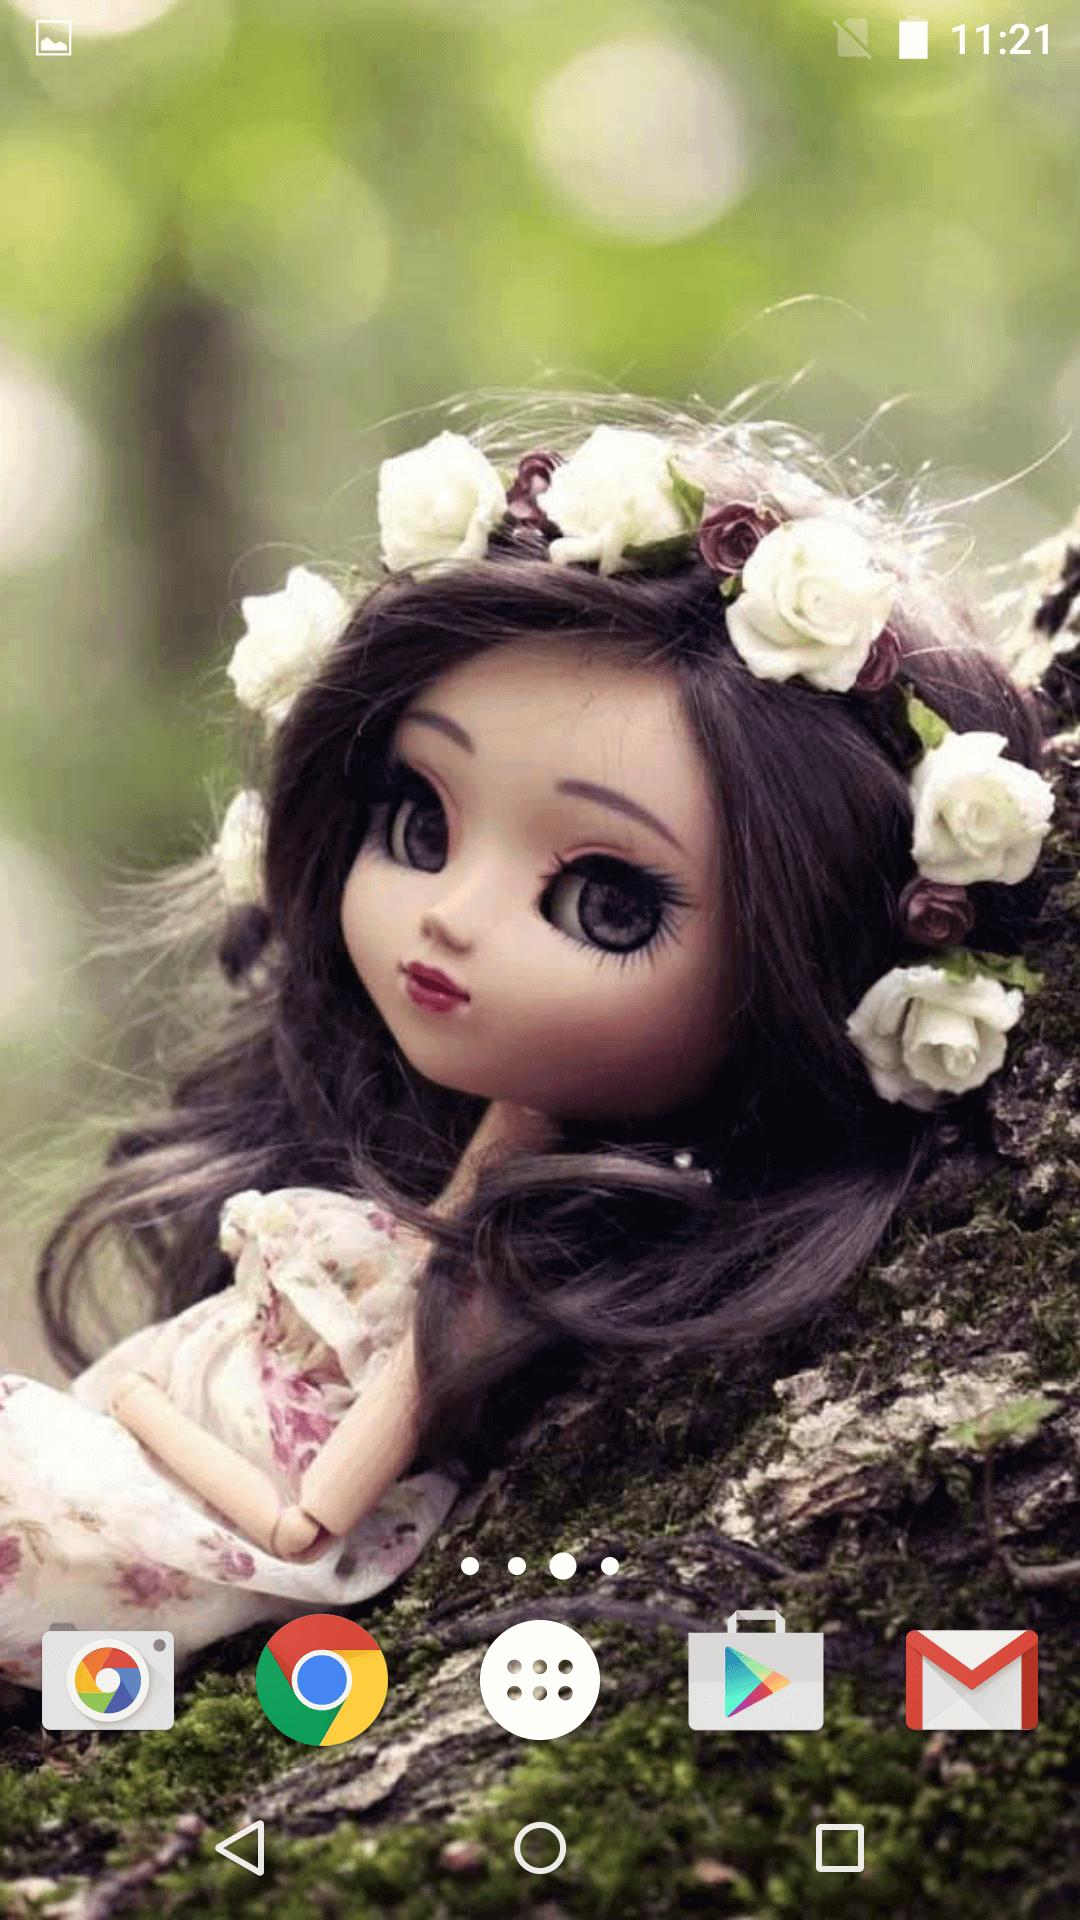 Cute Dolls Live Wallpaper For Android APK Download